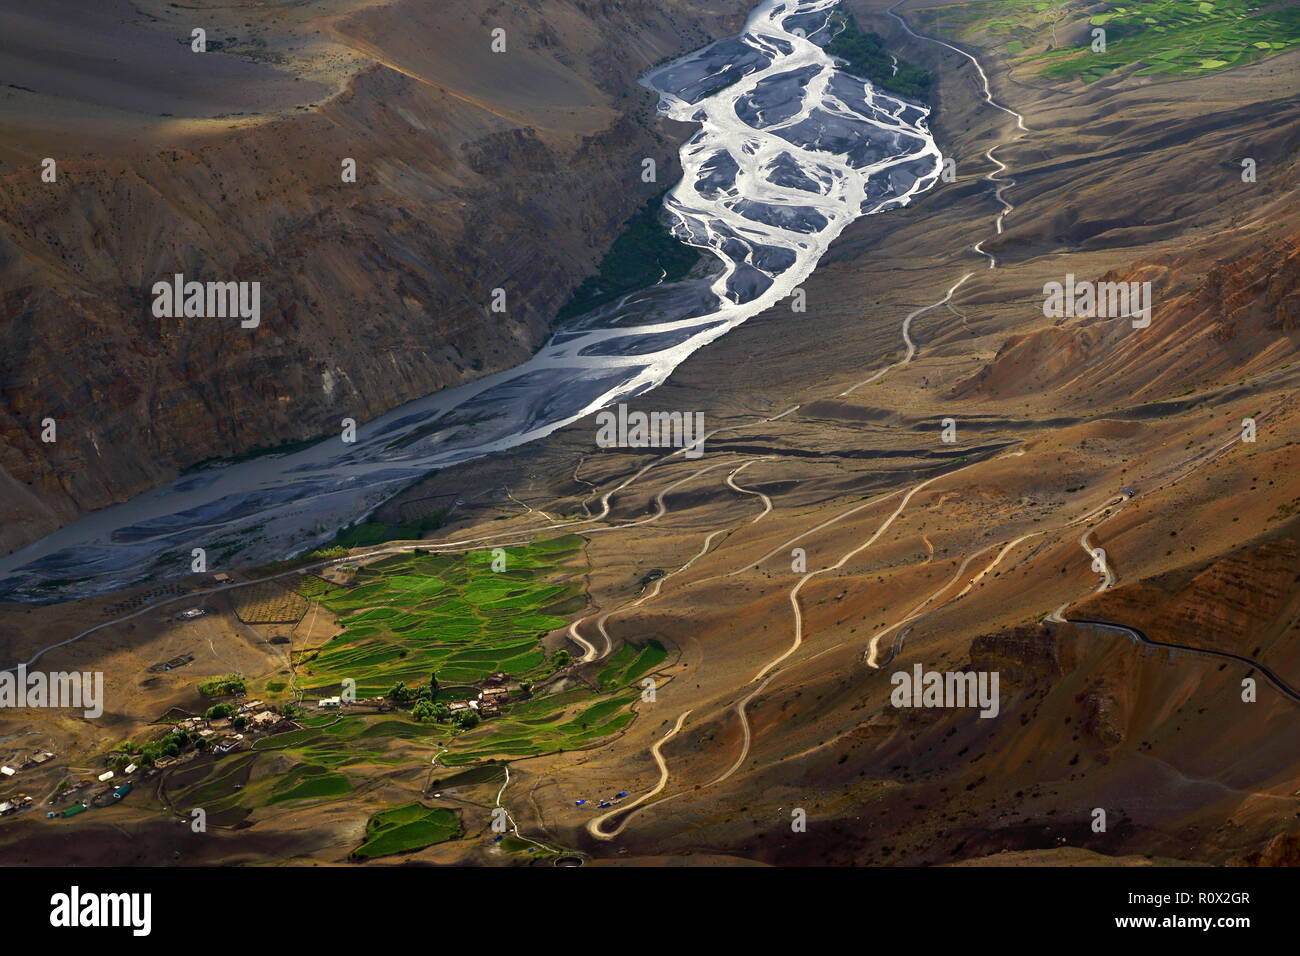 The Spiti River gleams silver in the golden hour. - Stock Image